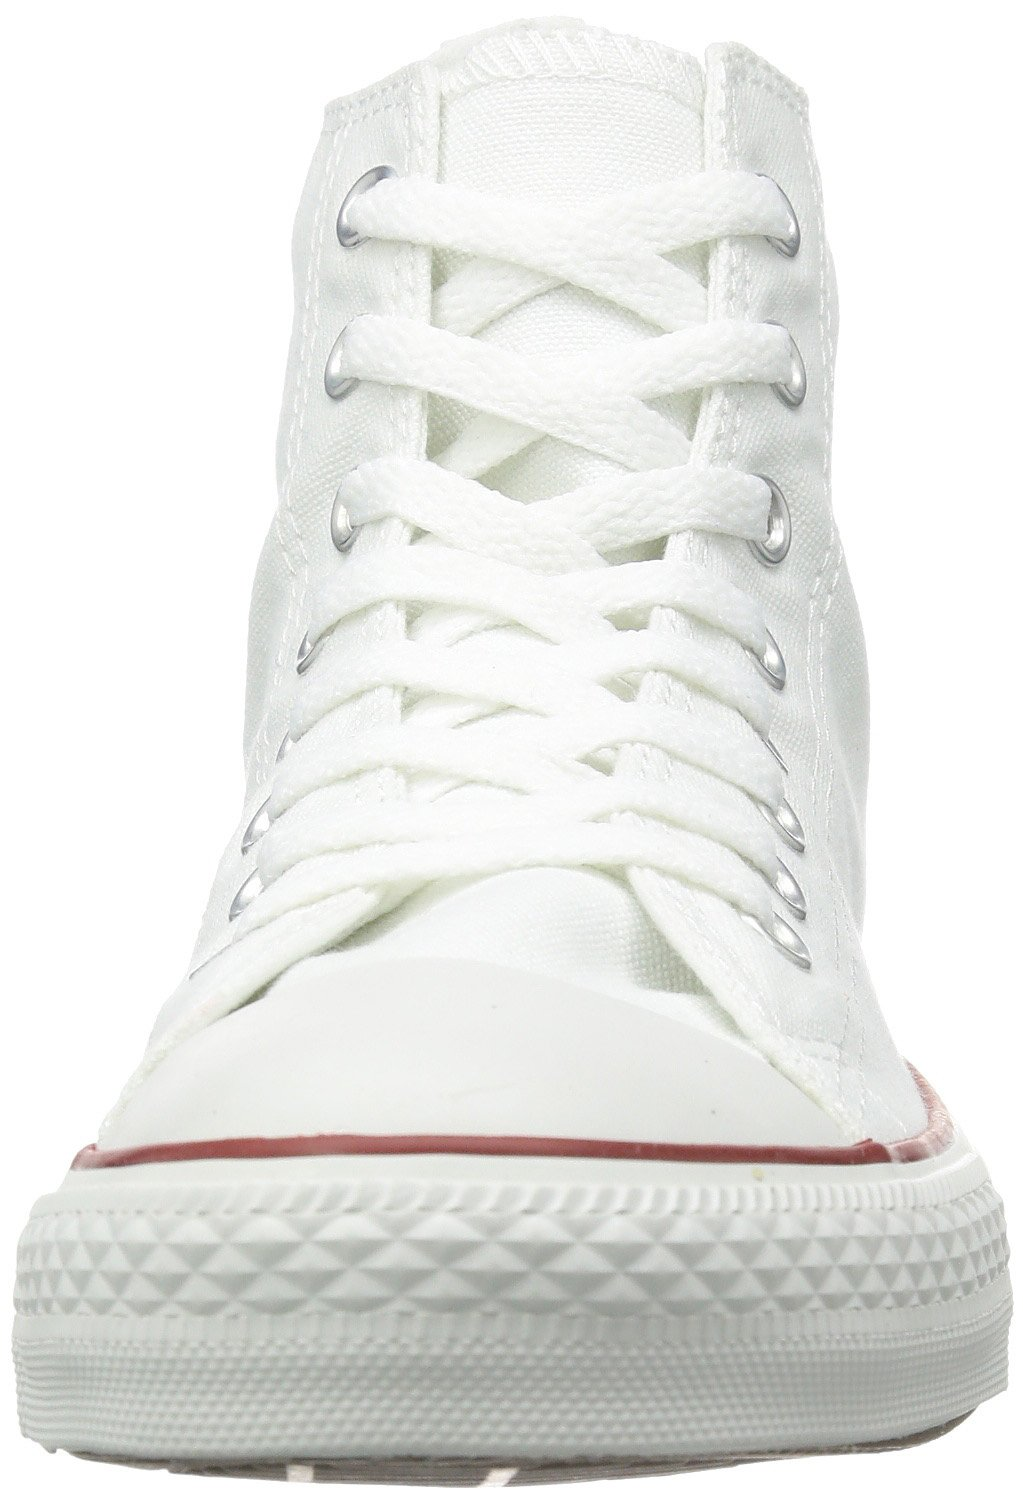 Converse Chuck Taylor All Star High Top Optical White M7650 Mens 12 by Converse (Image #4)